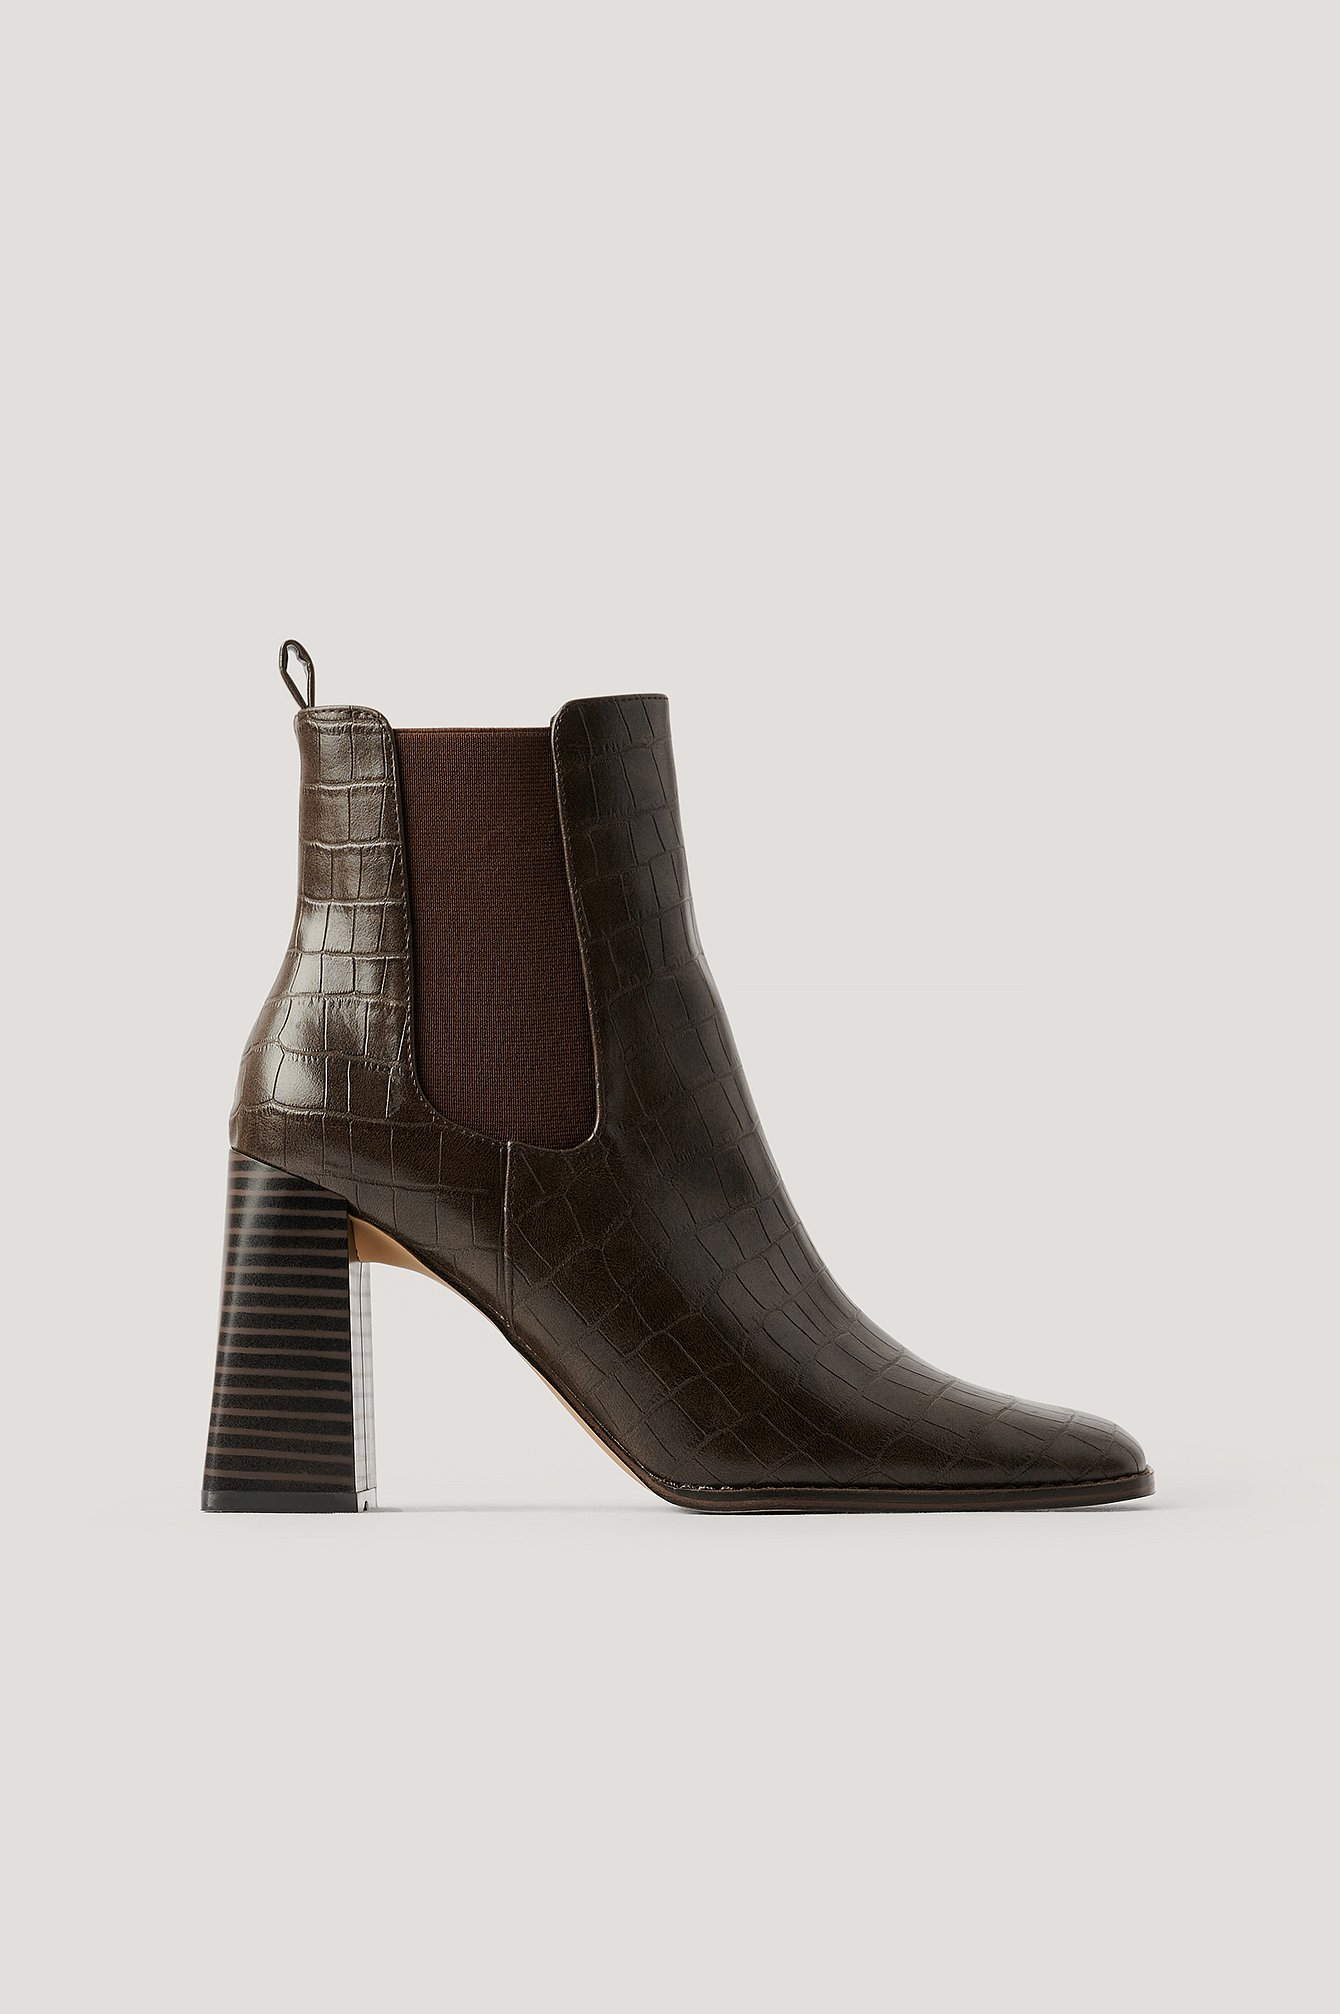 Na-Kd Shoes Flared Block Heel Boots - Brown